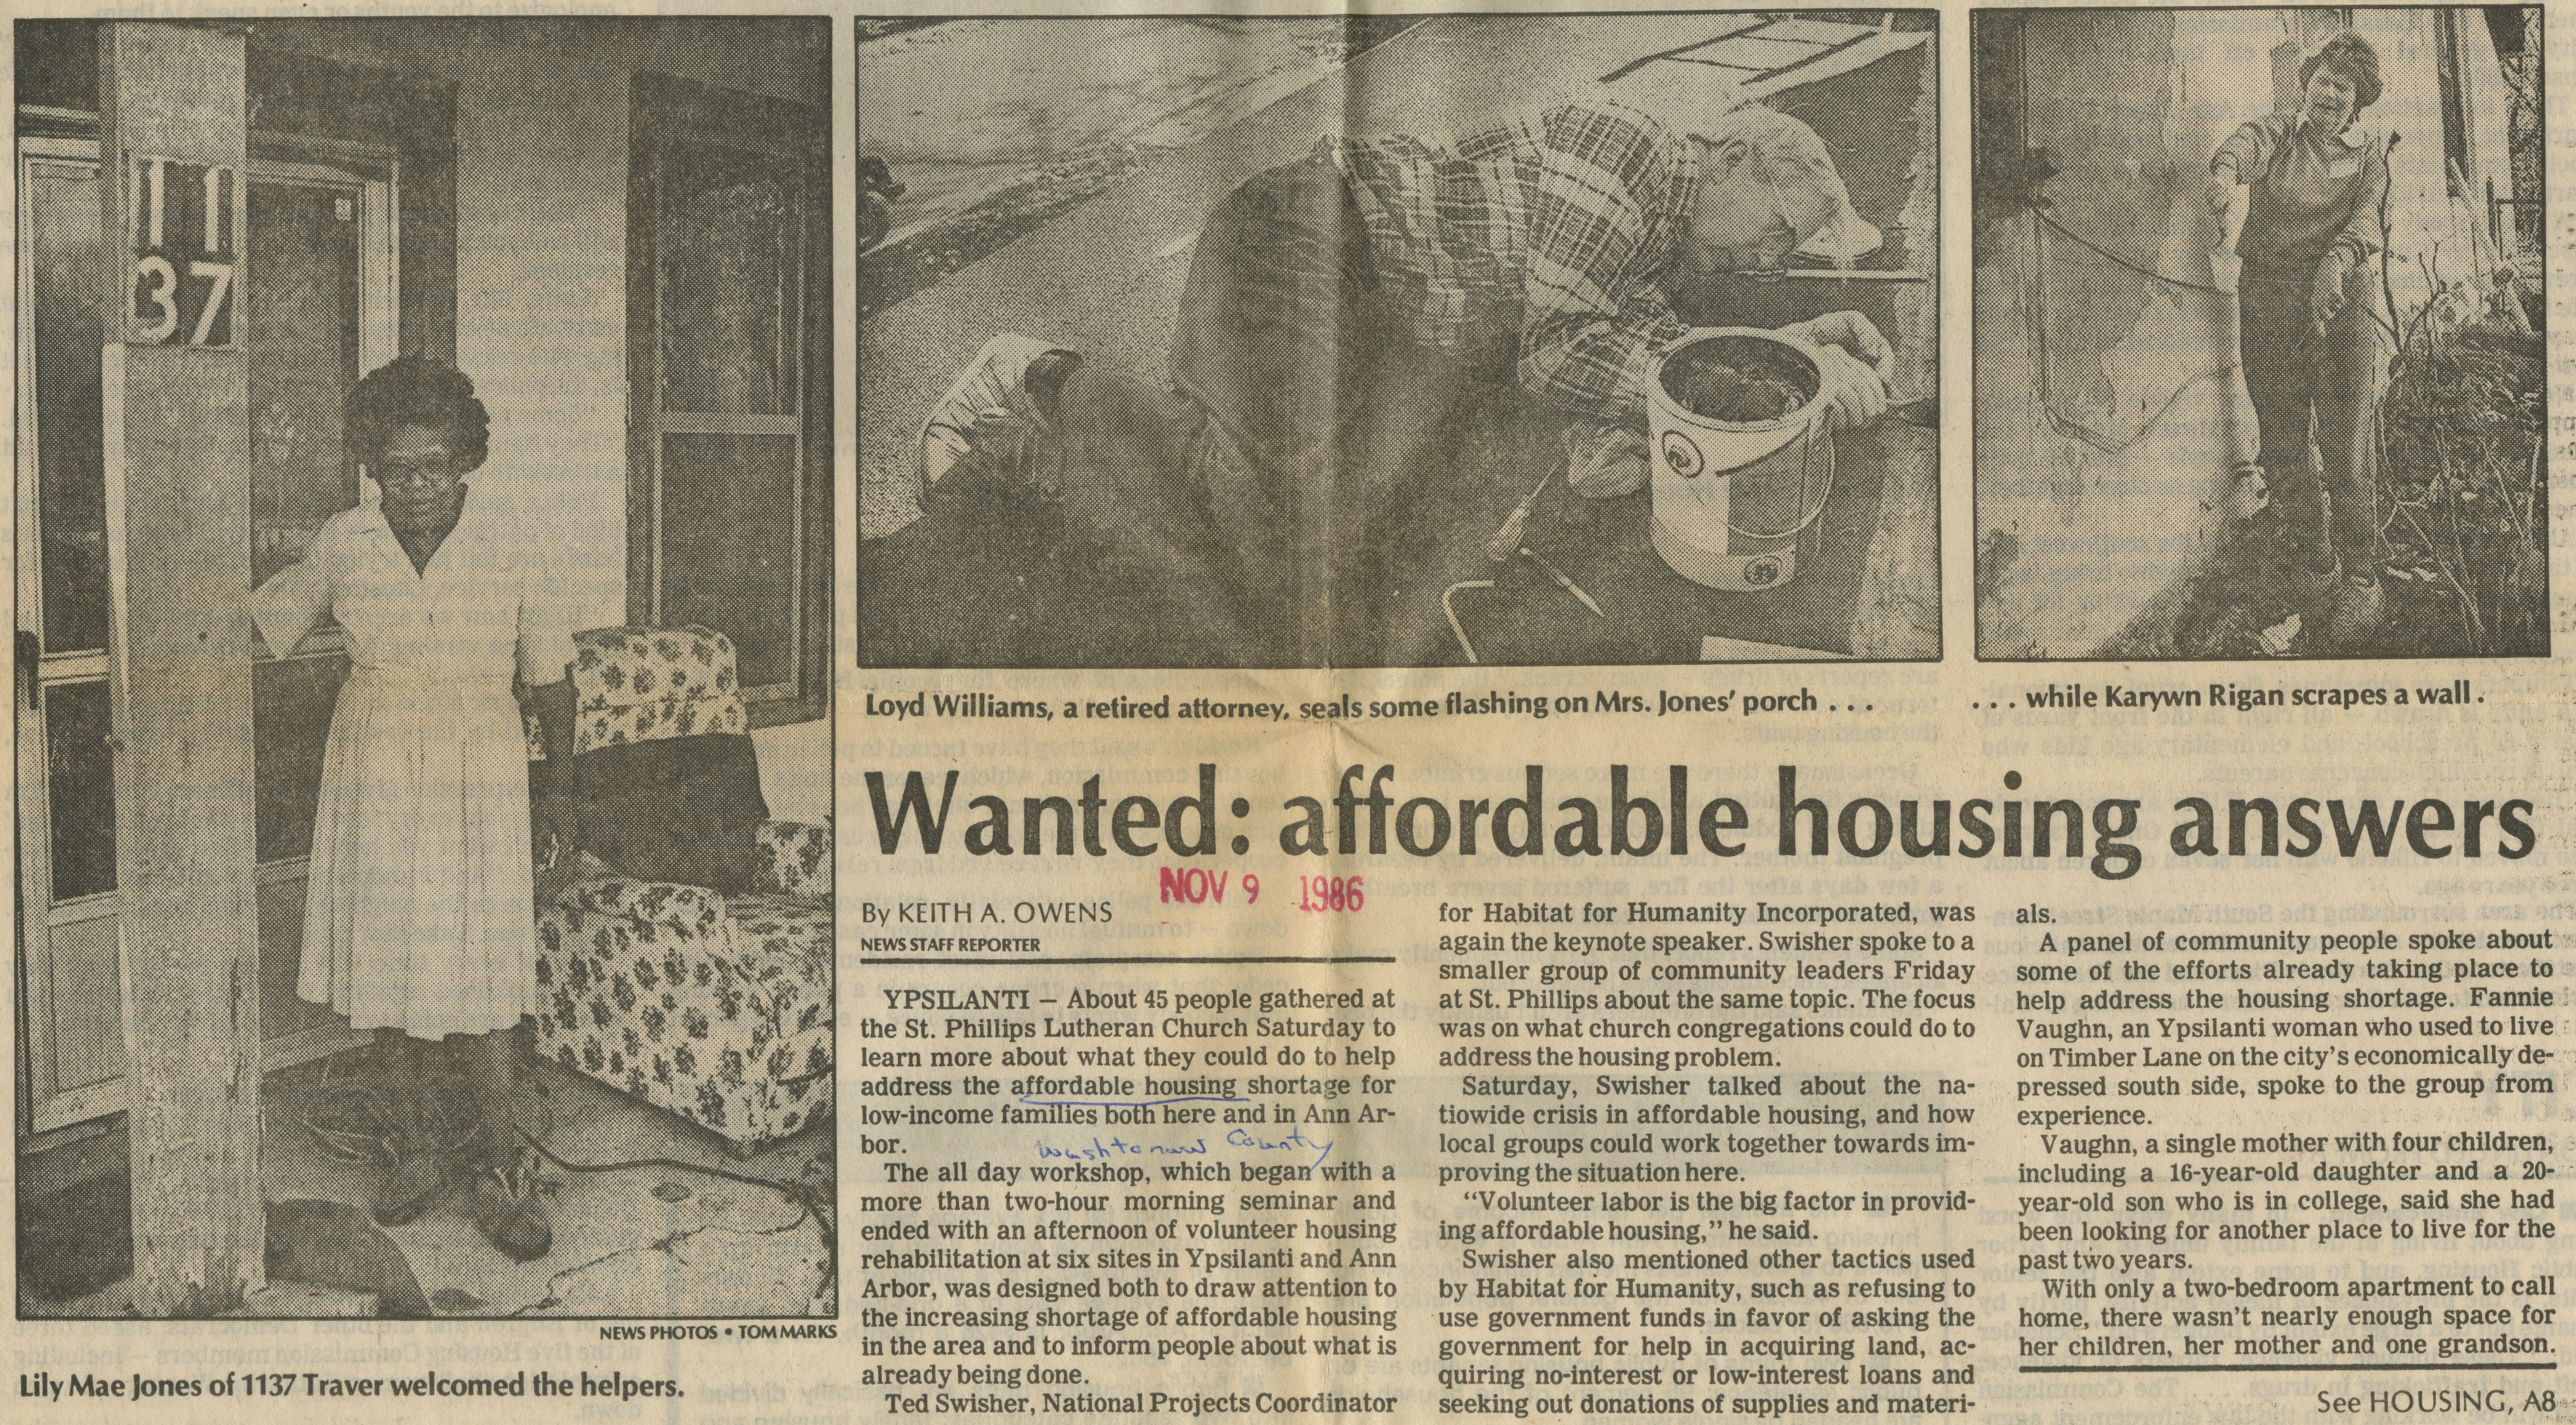 Wanted: Affordable Housing Answers image